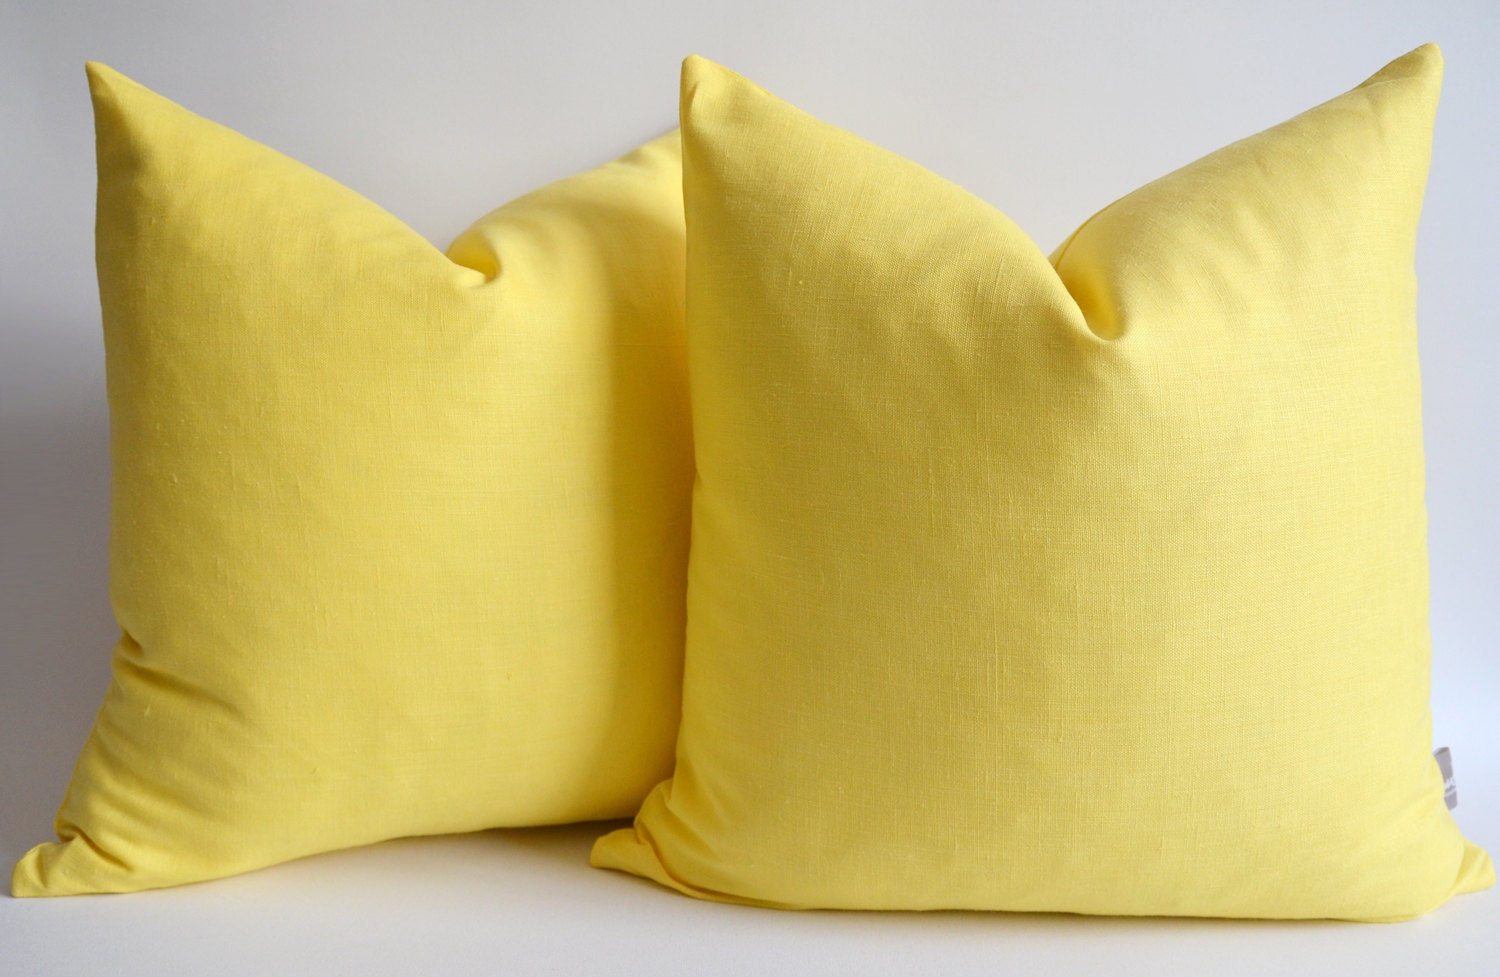 Pale Yellow Decorative Pillows : Yellow Decorative Pillows - Kids Art Decorating Ideas